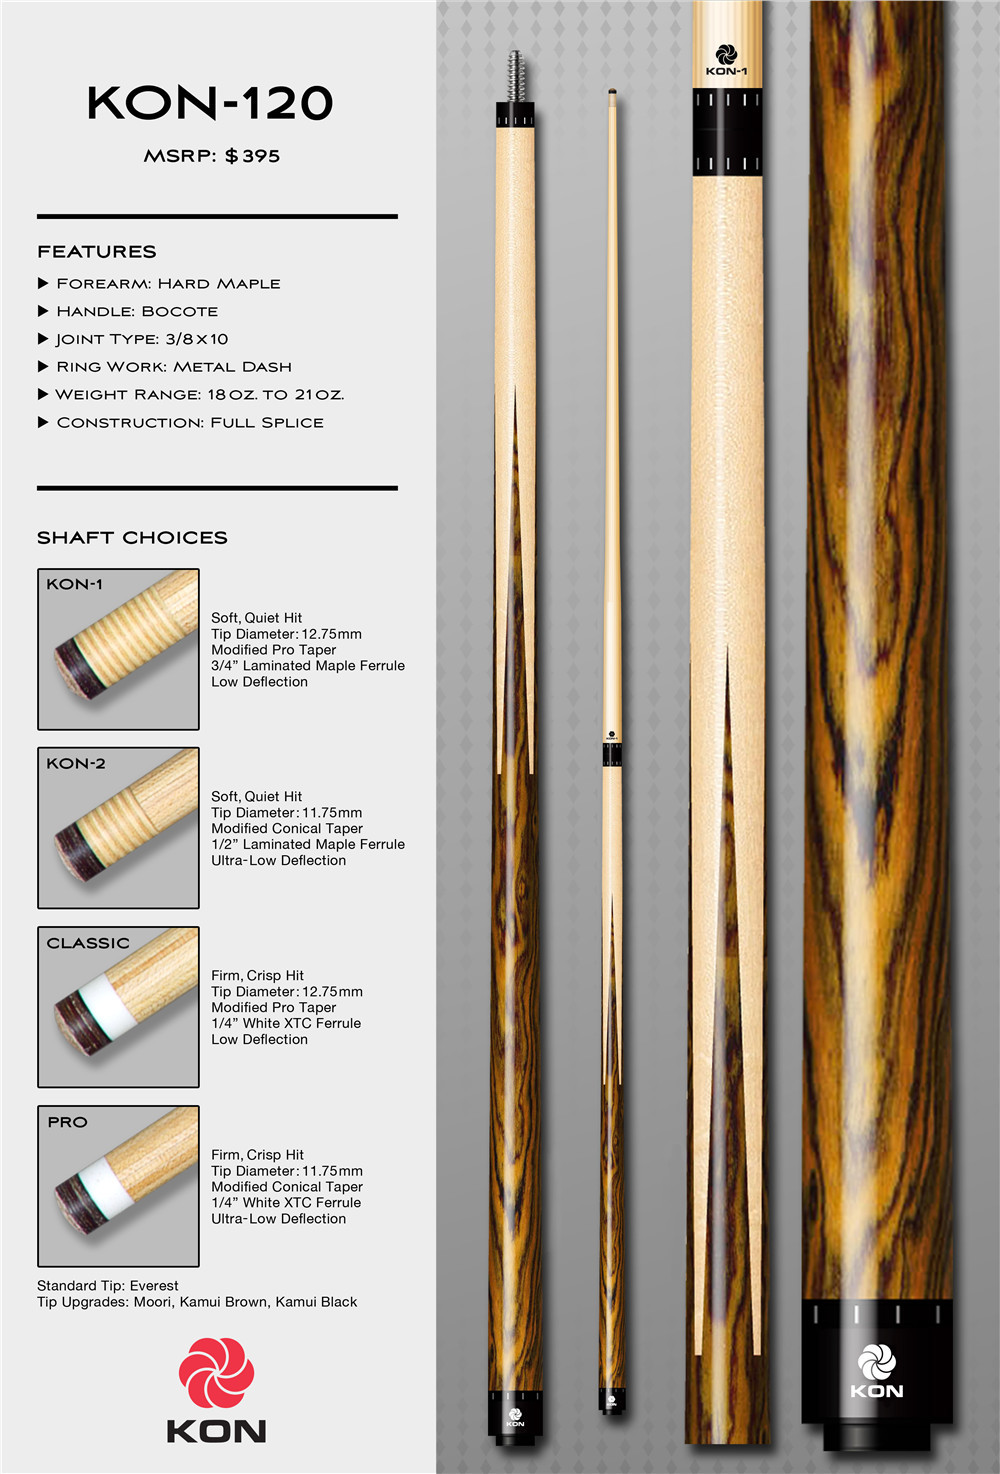 KON-120 wholesale of imported genuine snooker and billiard pool cues of OB pool cue